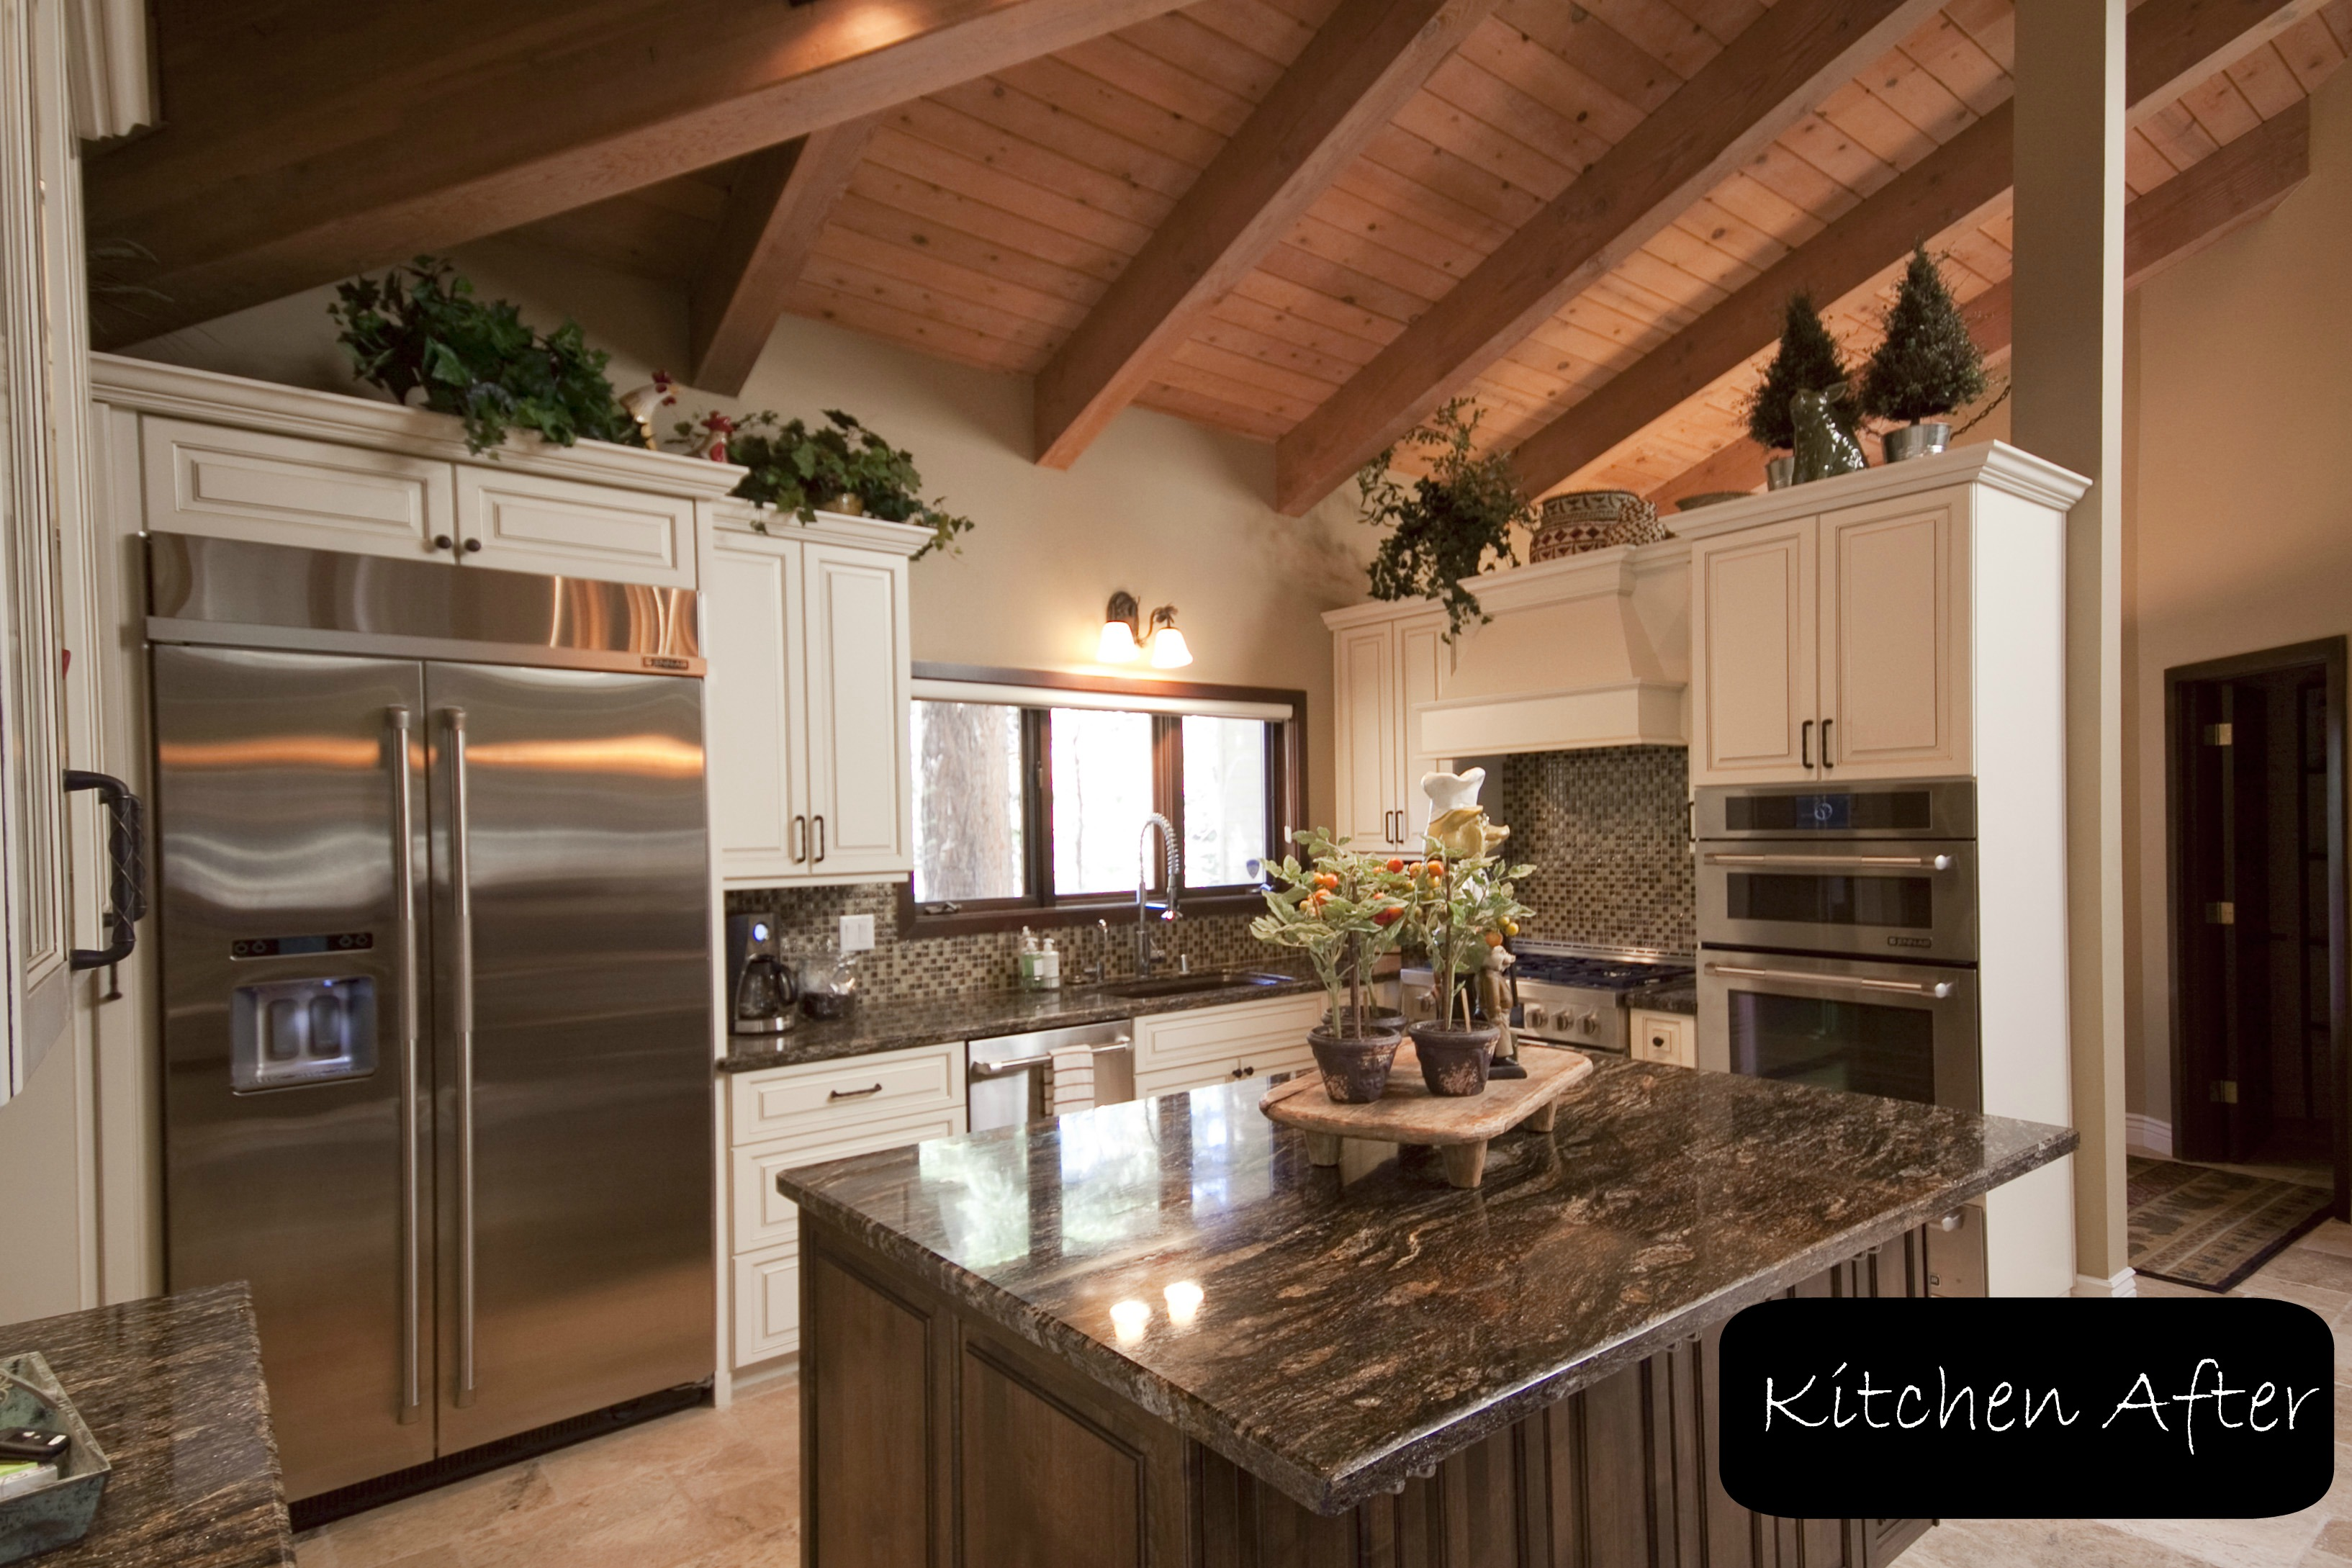 here is a great kitchen remodel transformation that demonstrates just